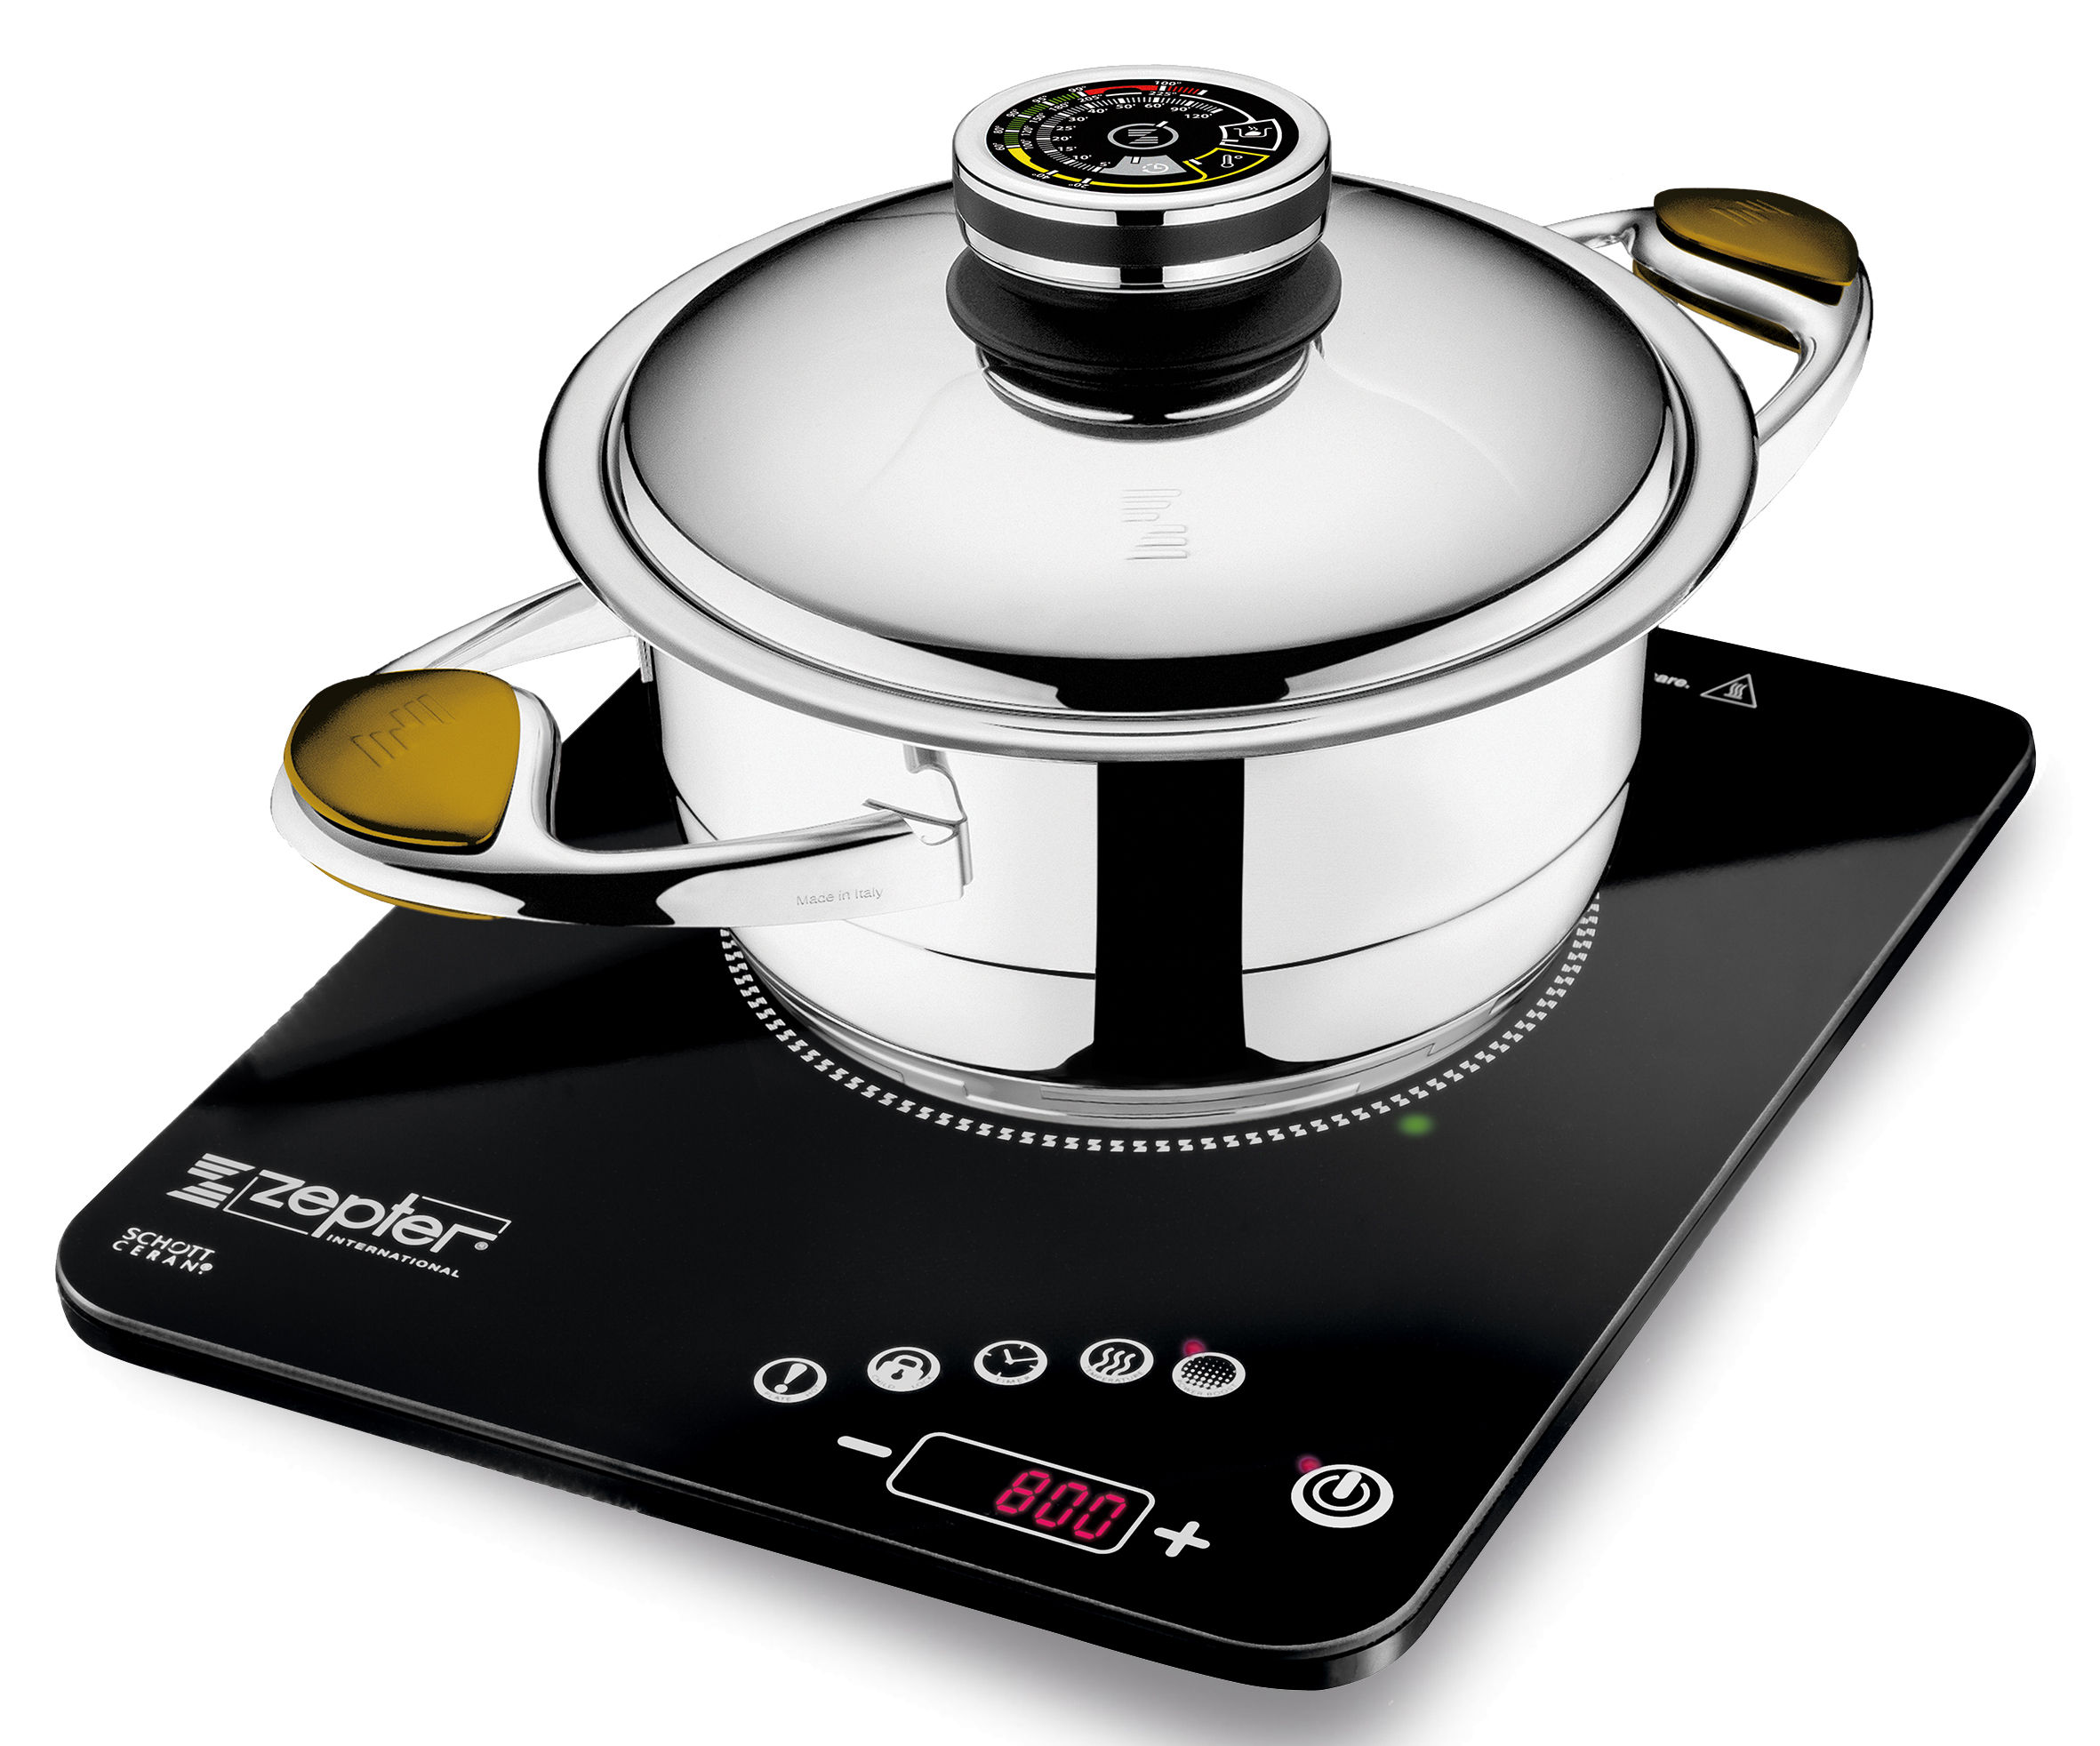 All Zepter Masterpiece Cookware pots have the patented accuthermal bottom which work perfectly with the new Radio Induction Cooker